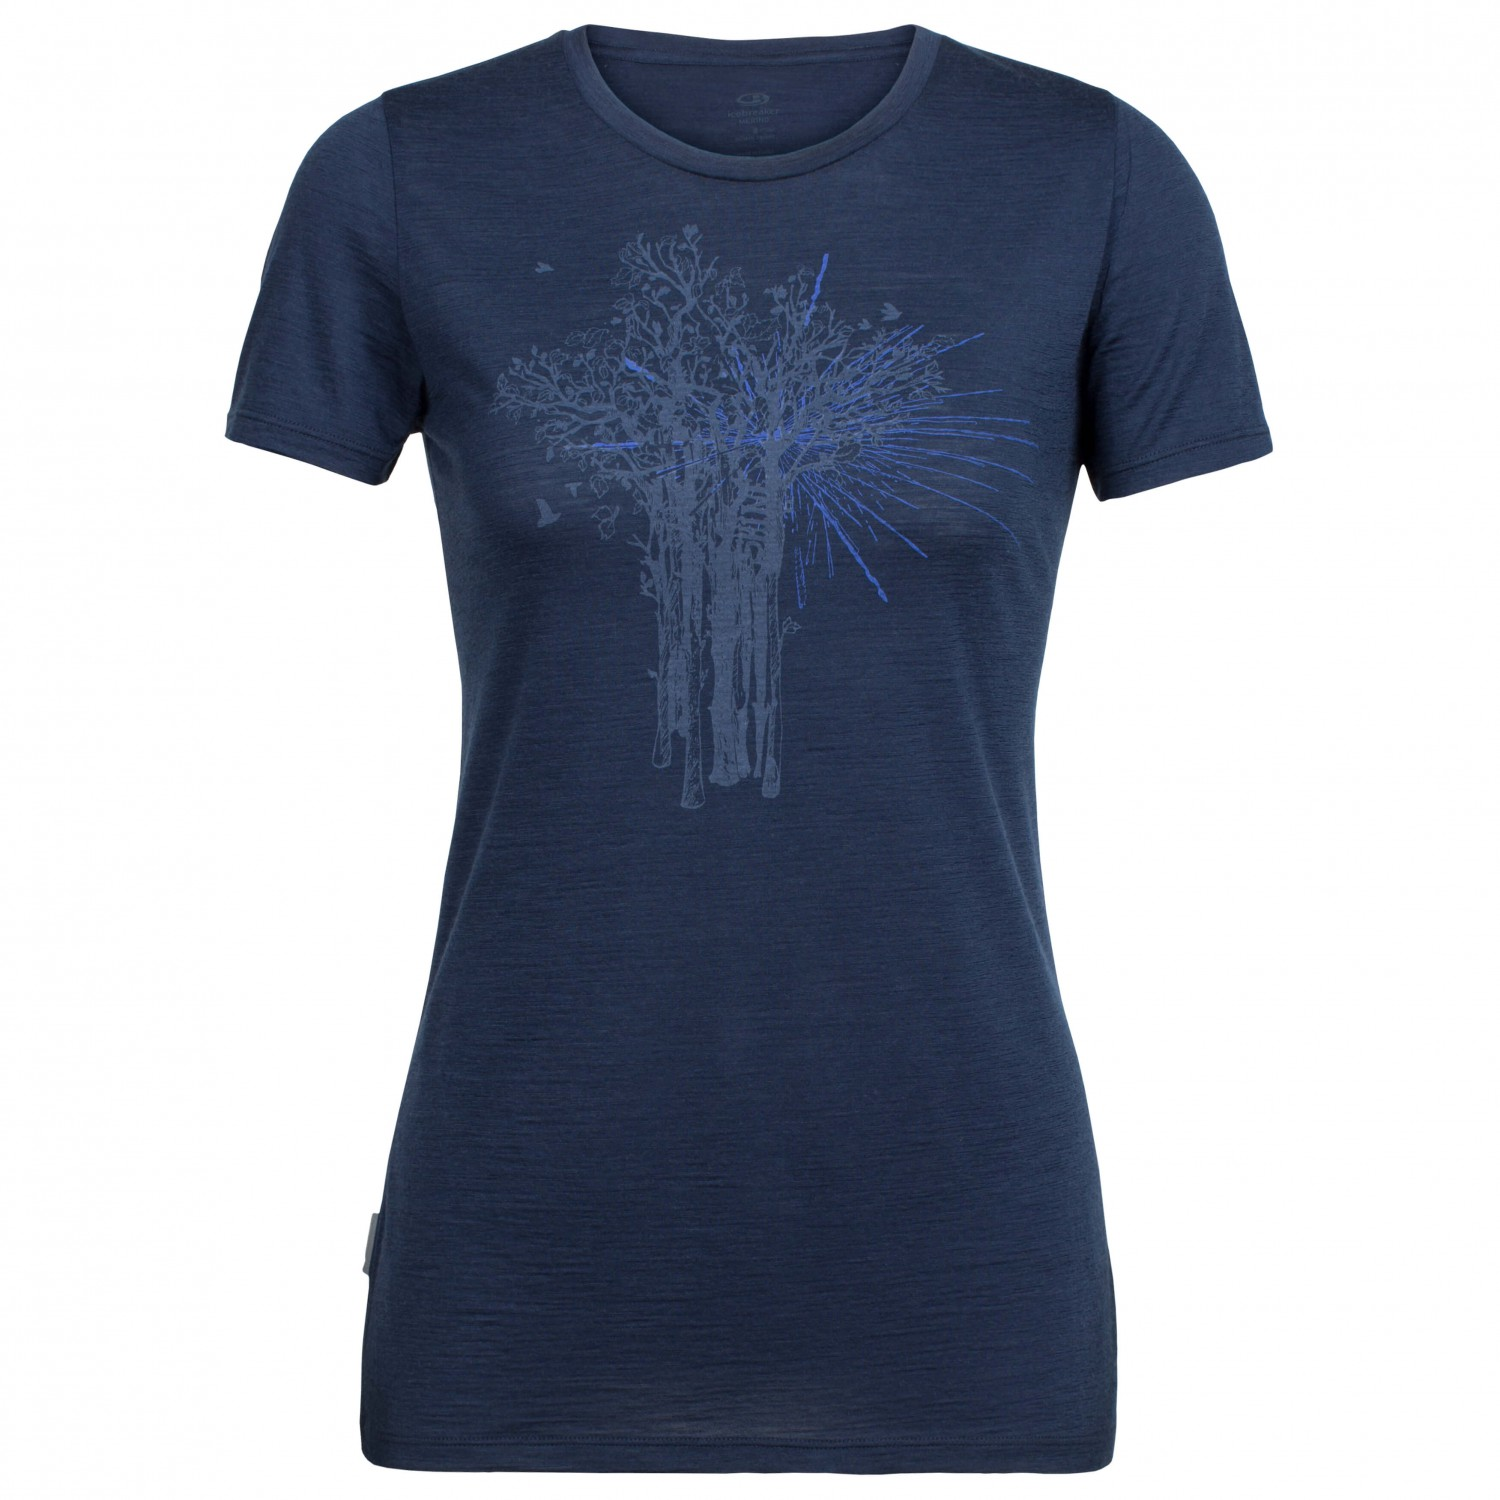 c52a8a26855 Icebreaker Spector S/S Crewe Shine - T-Shirt Women's | Buy online |  Alpinetrek.co.uk